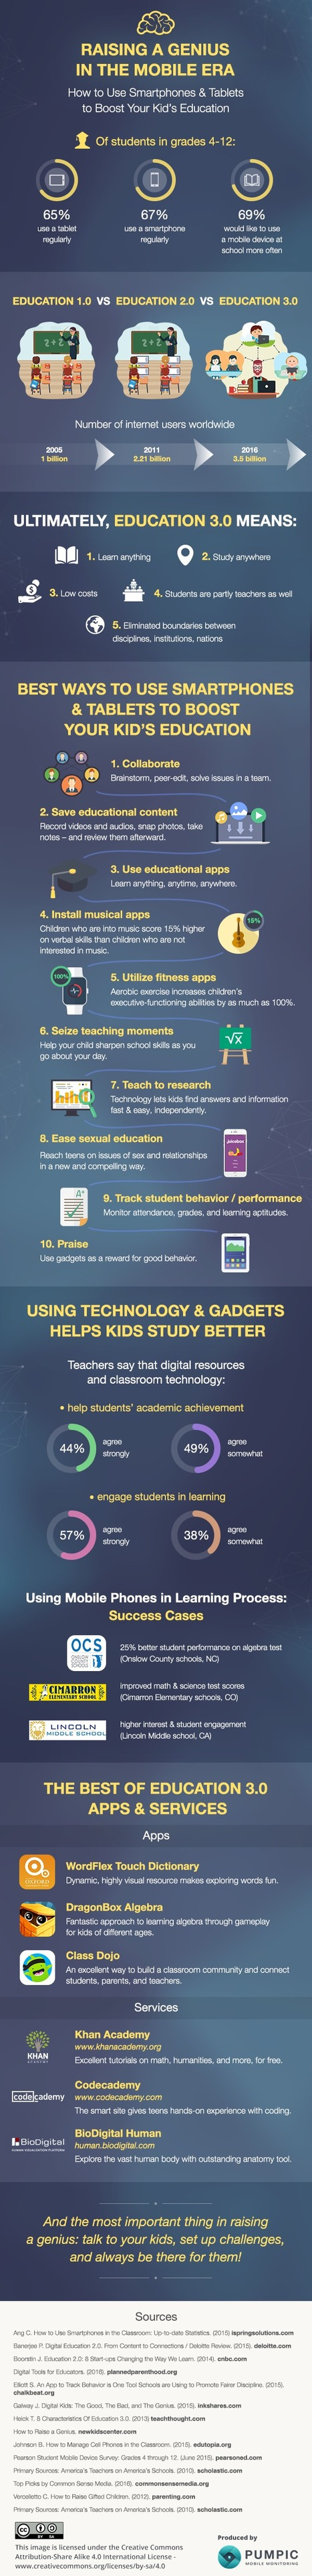 10 Good Ways to Boost Kids Learning Using Mobile Technology | Mobile Learning in Higher Education | Scoop.it